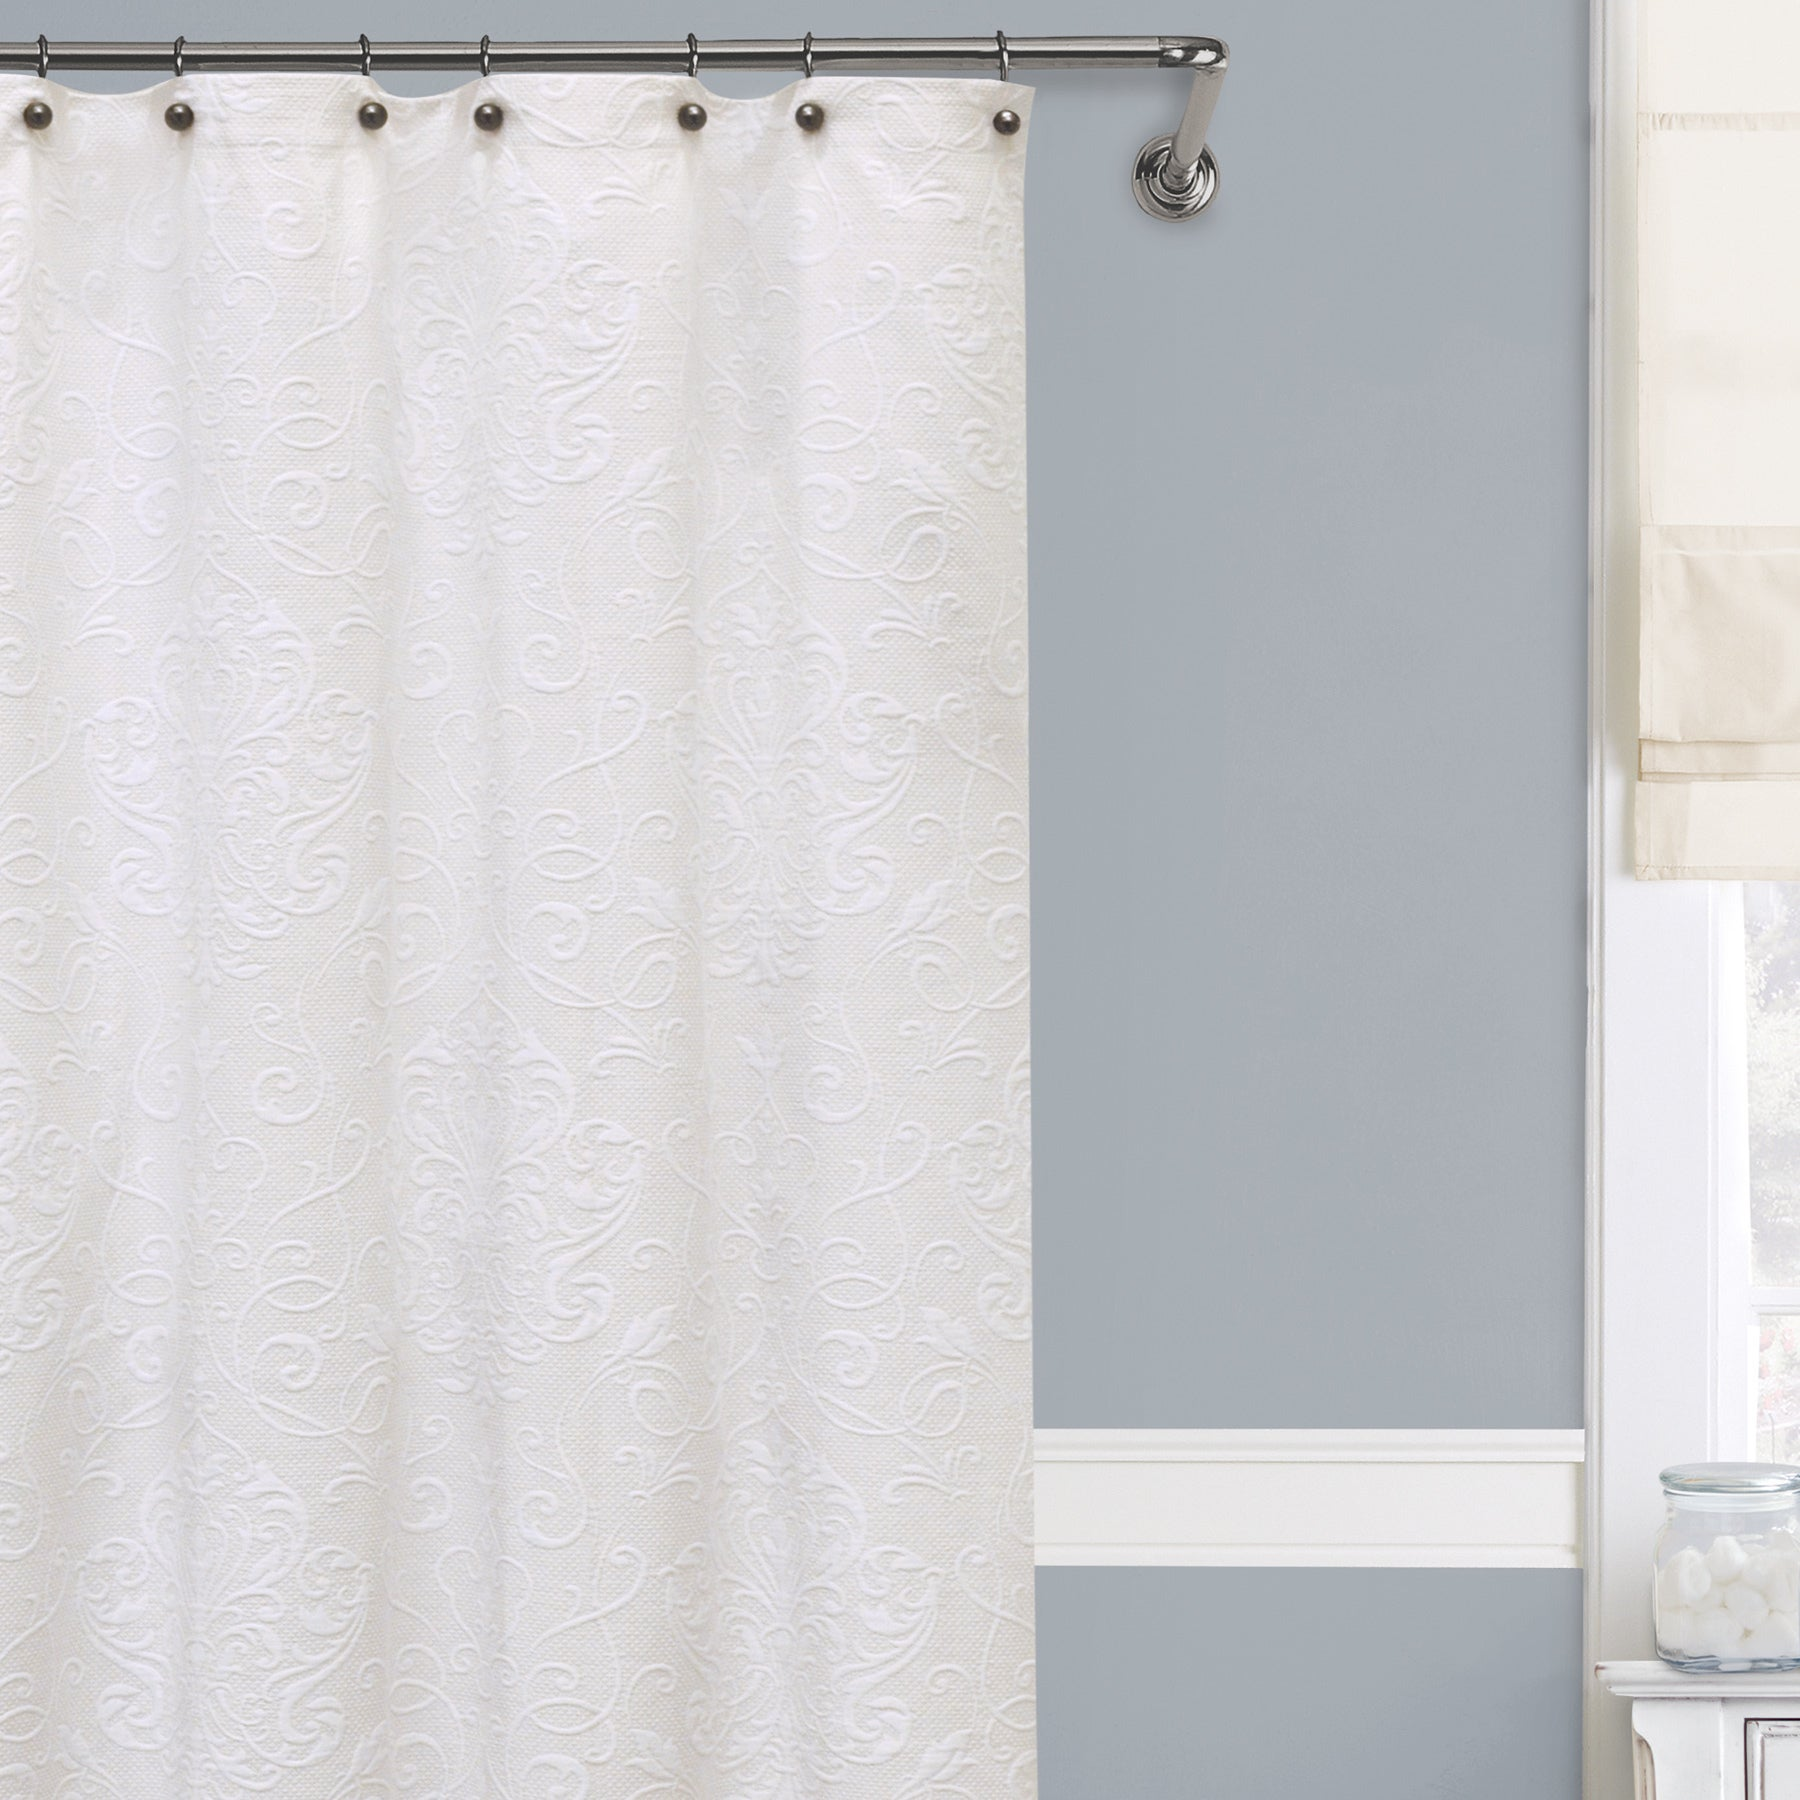 Lamont Home Isabella Shower Curtain - 5 Sizes Available - Free Shipping  Today - Overstock.com - 17281728